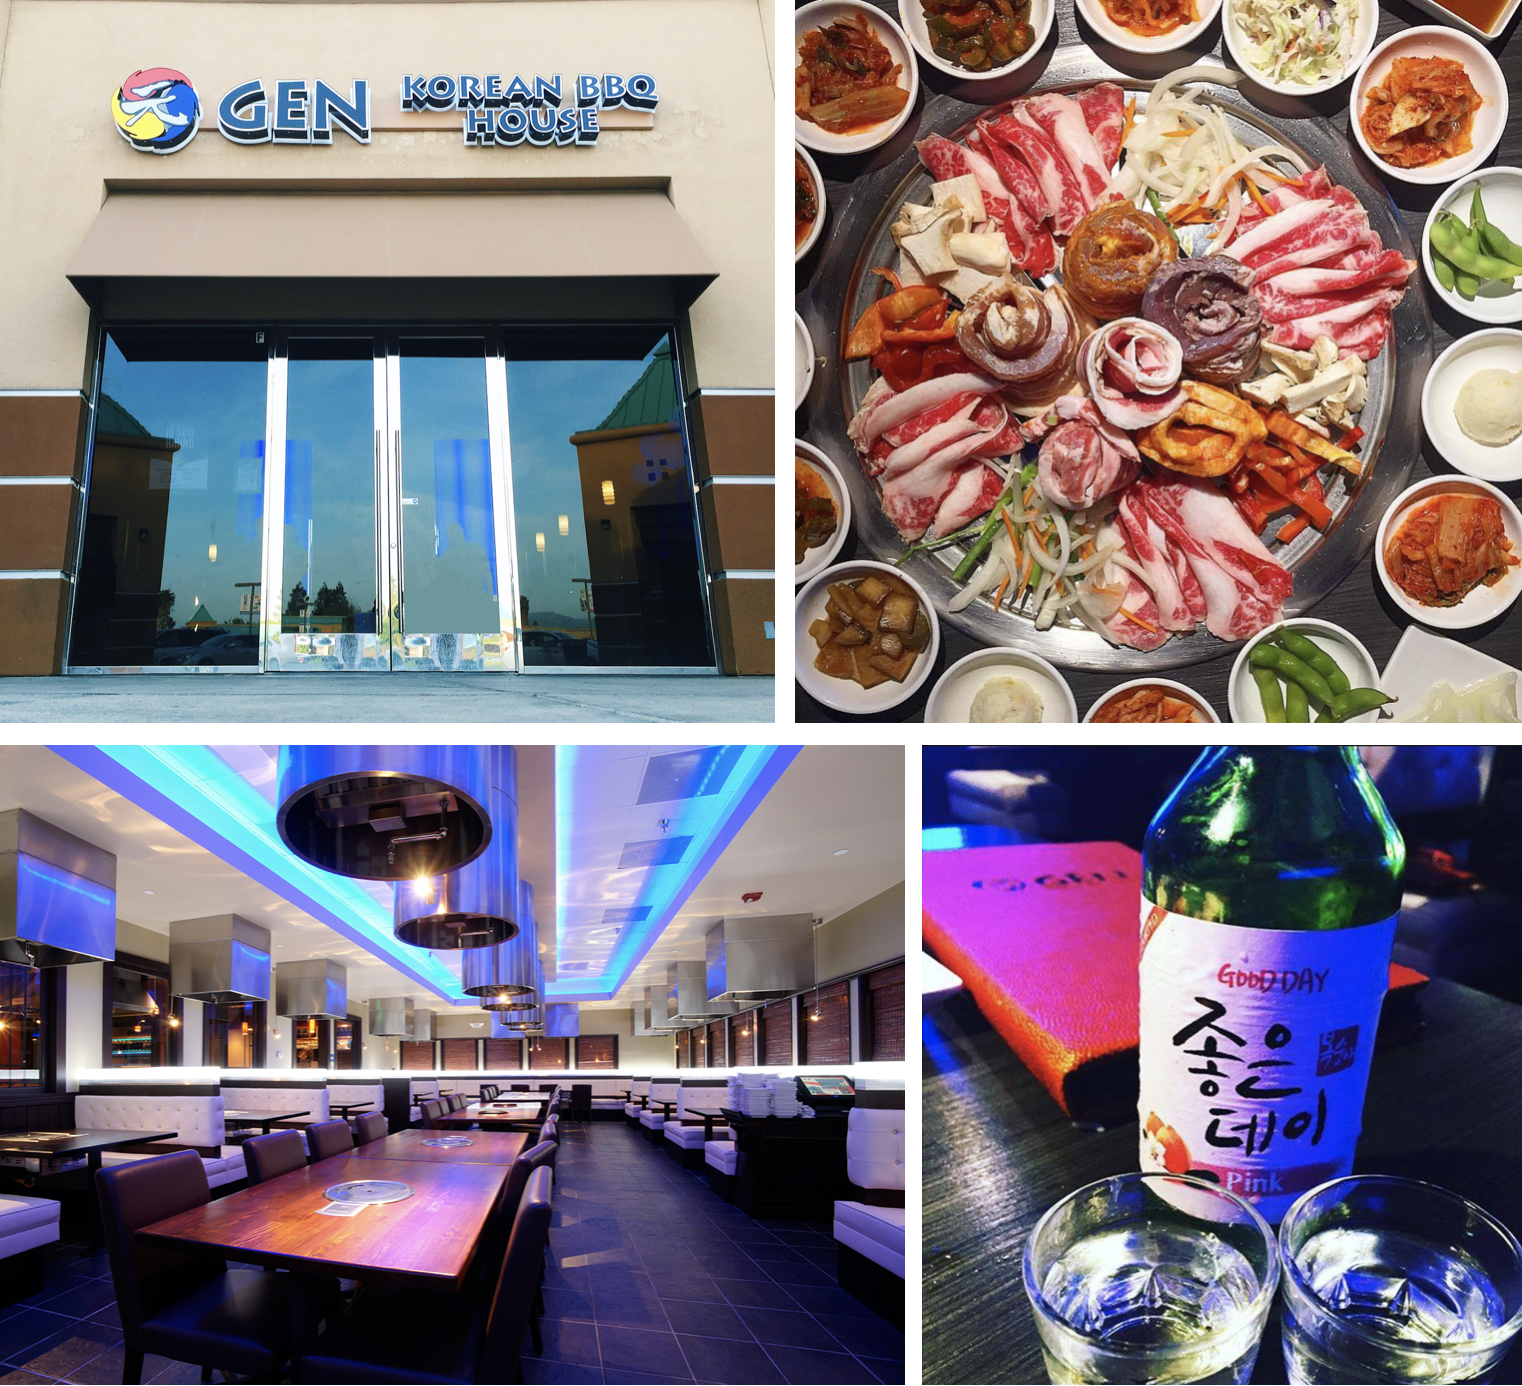 Sandiegoville All You Can Eat Gen Korean Bbq House Opening